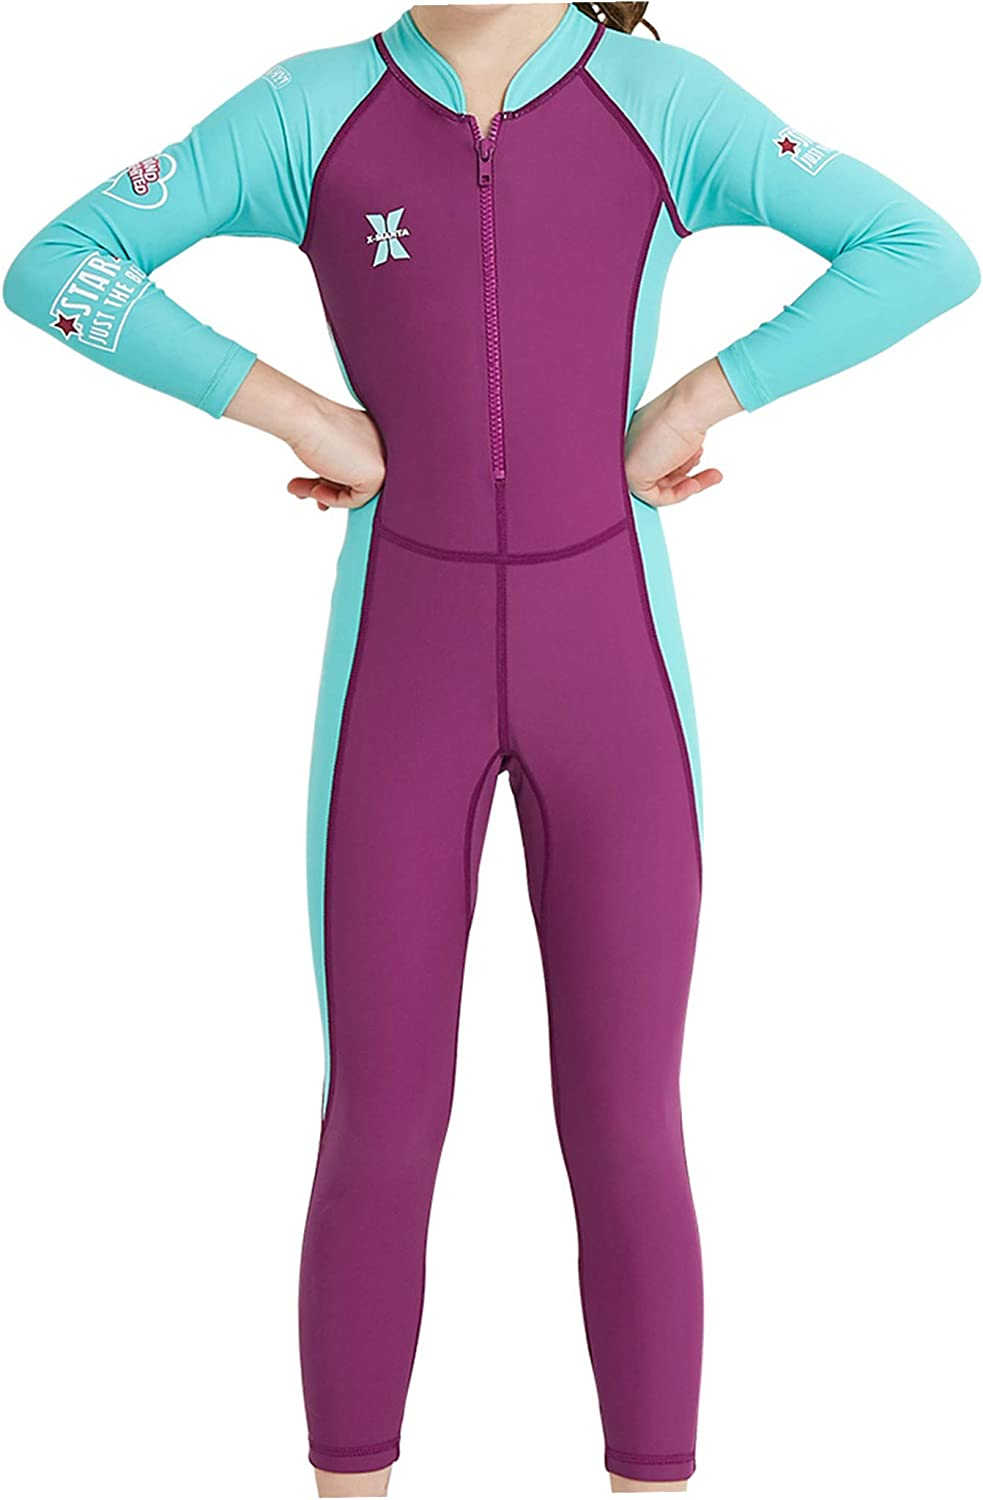 All stores are sold AceAcr Kids Long Sleeve Swimsuit One Swimwe Piece Sun Protection Sale item